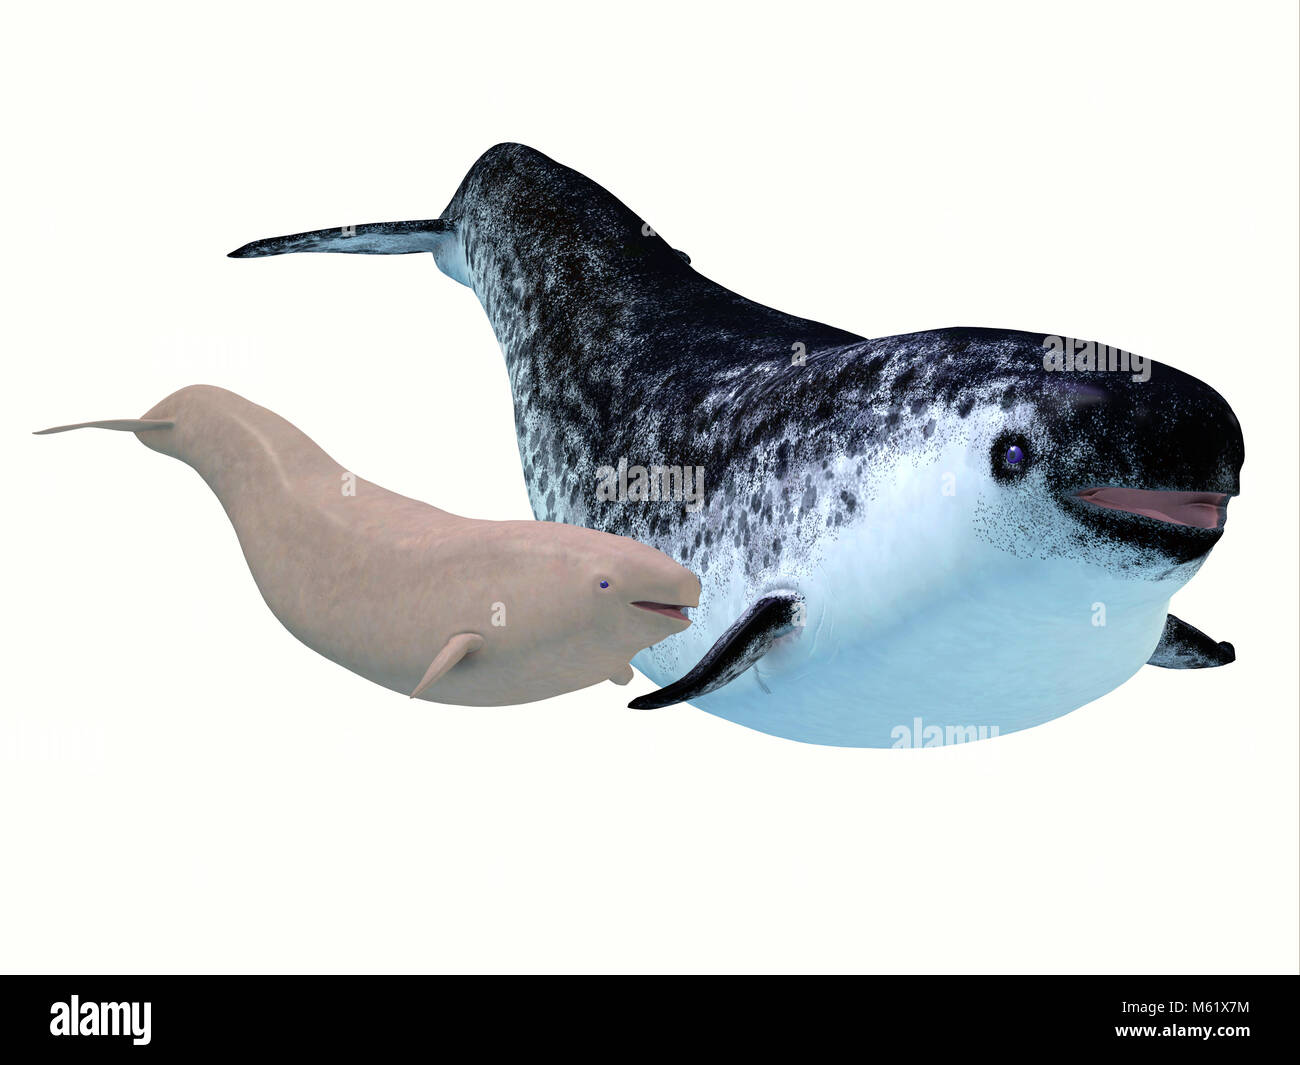 The Narwhal is a medium sized toothed whale that lives in social family pods of several individuals. - Stock Image